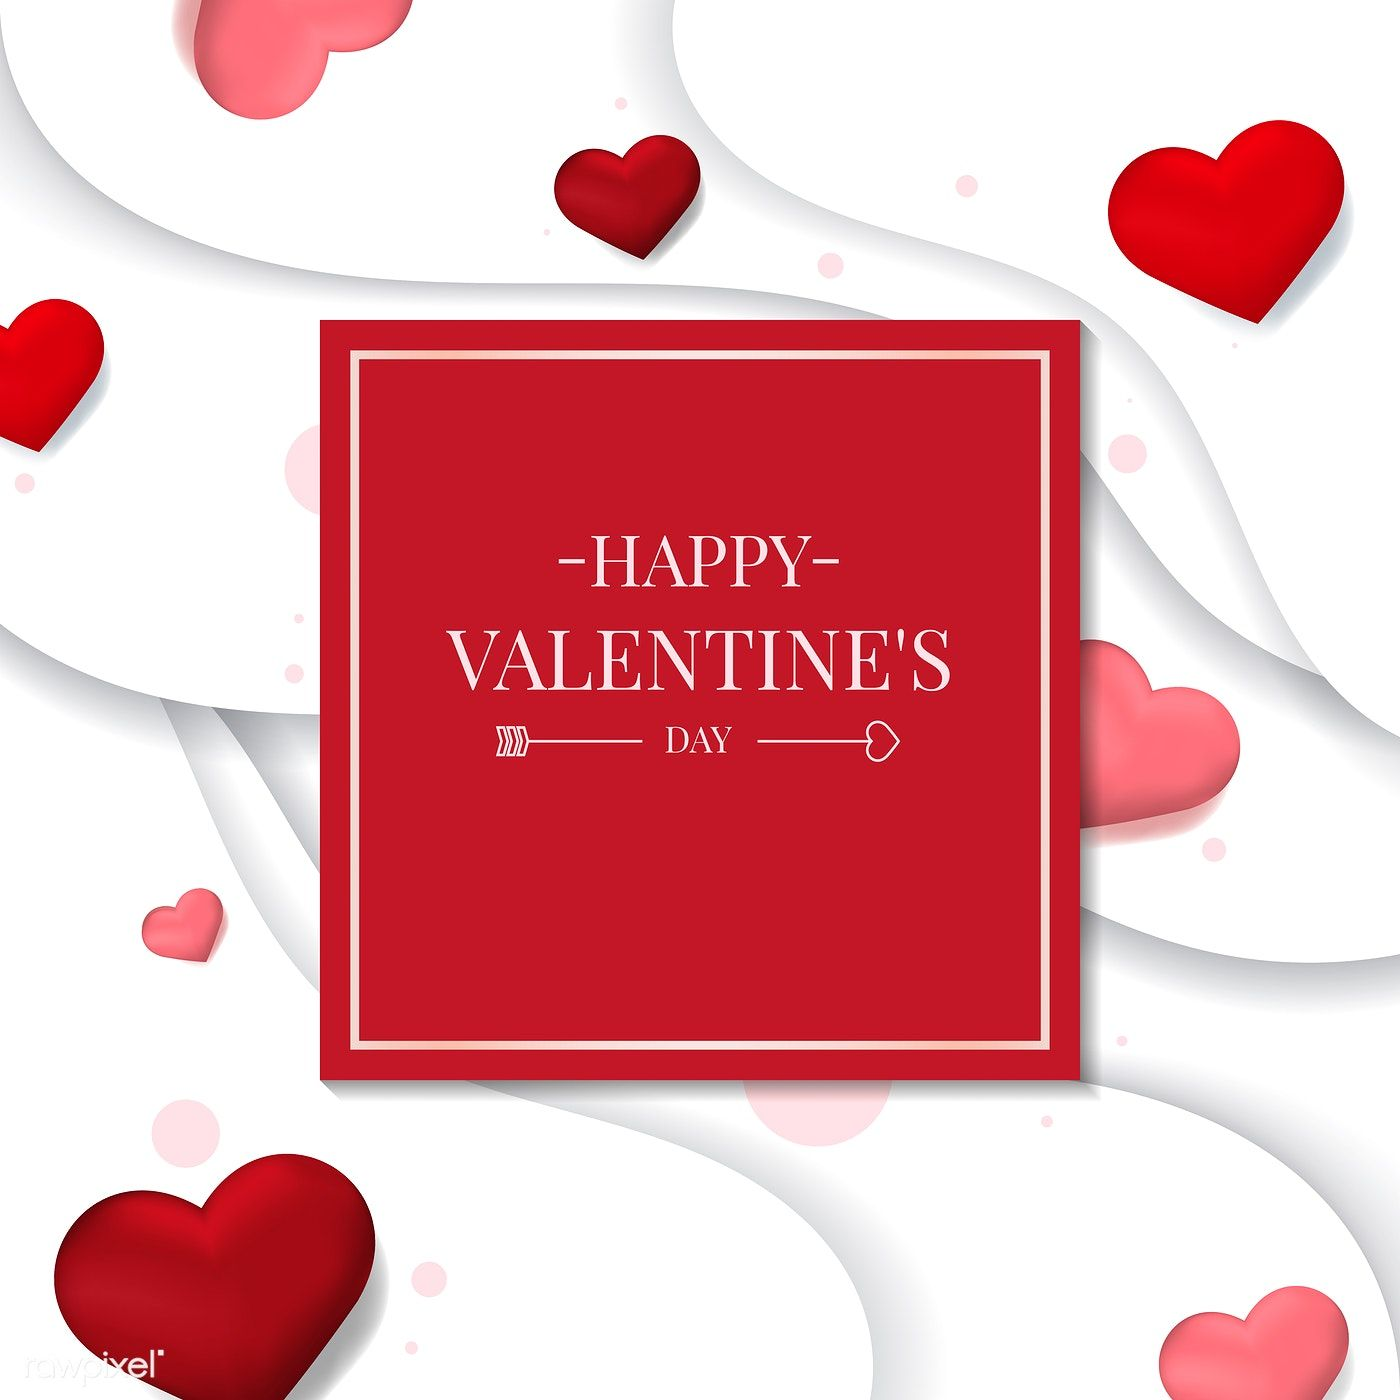 Valentine S Day Vector Design Concept Free Image By Rawpixel Com Sasi Valentines Day Clipart Valentines Images For Valentines Day